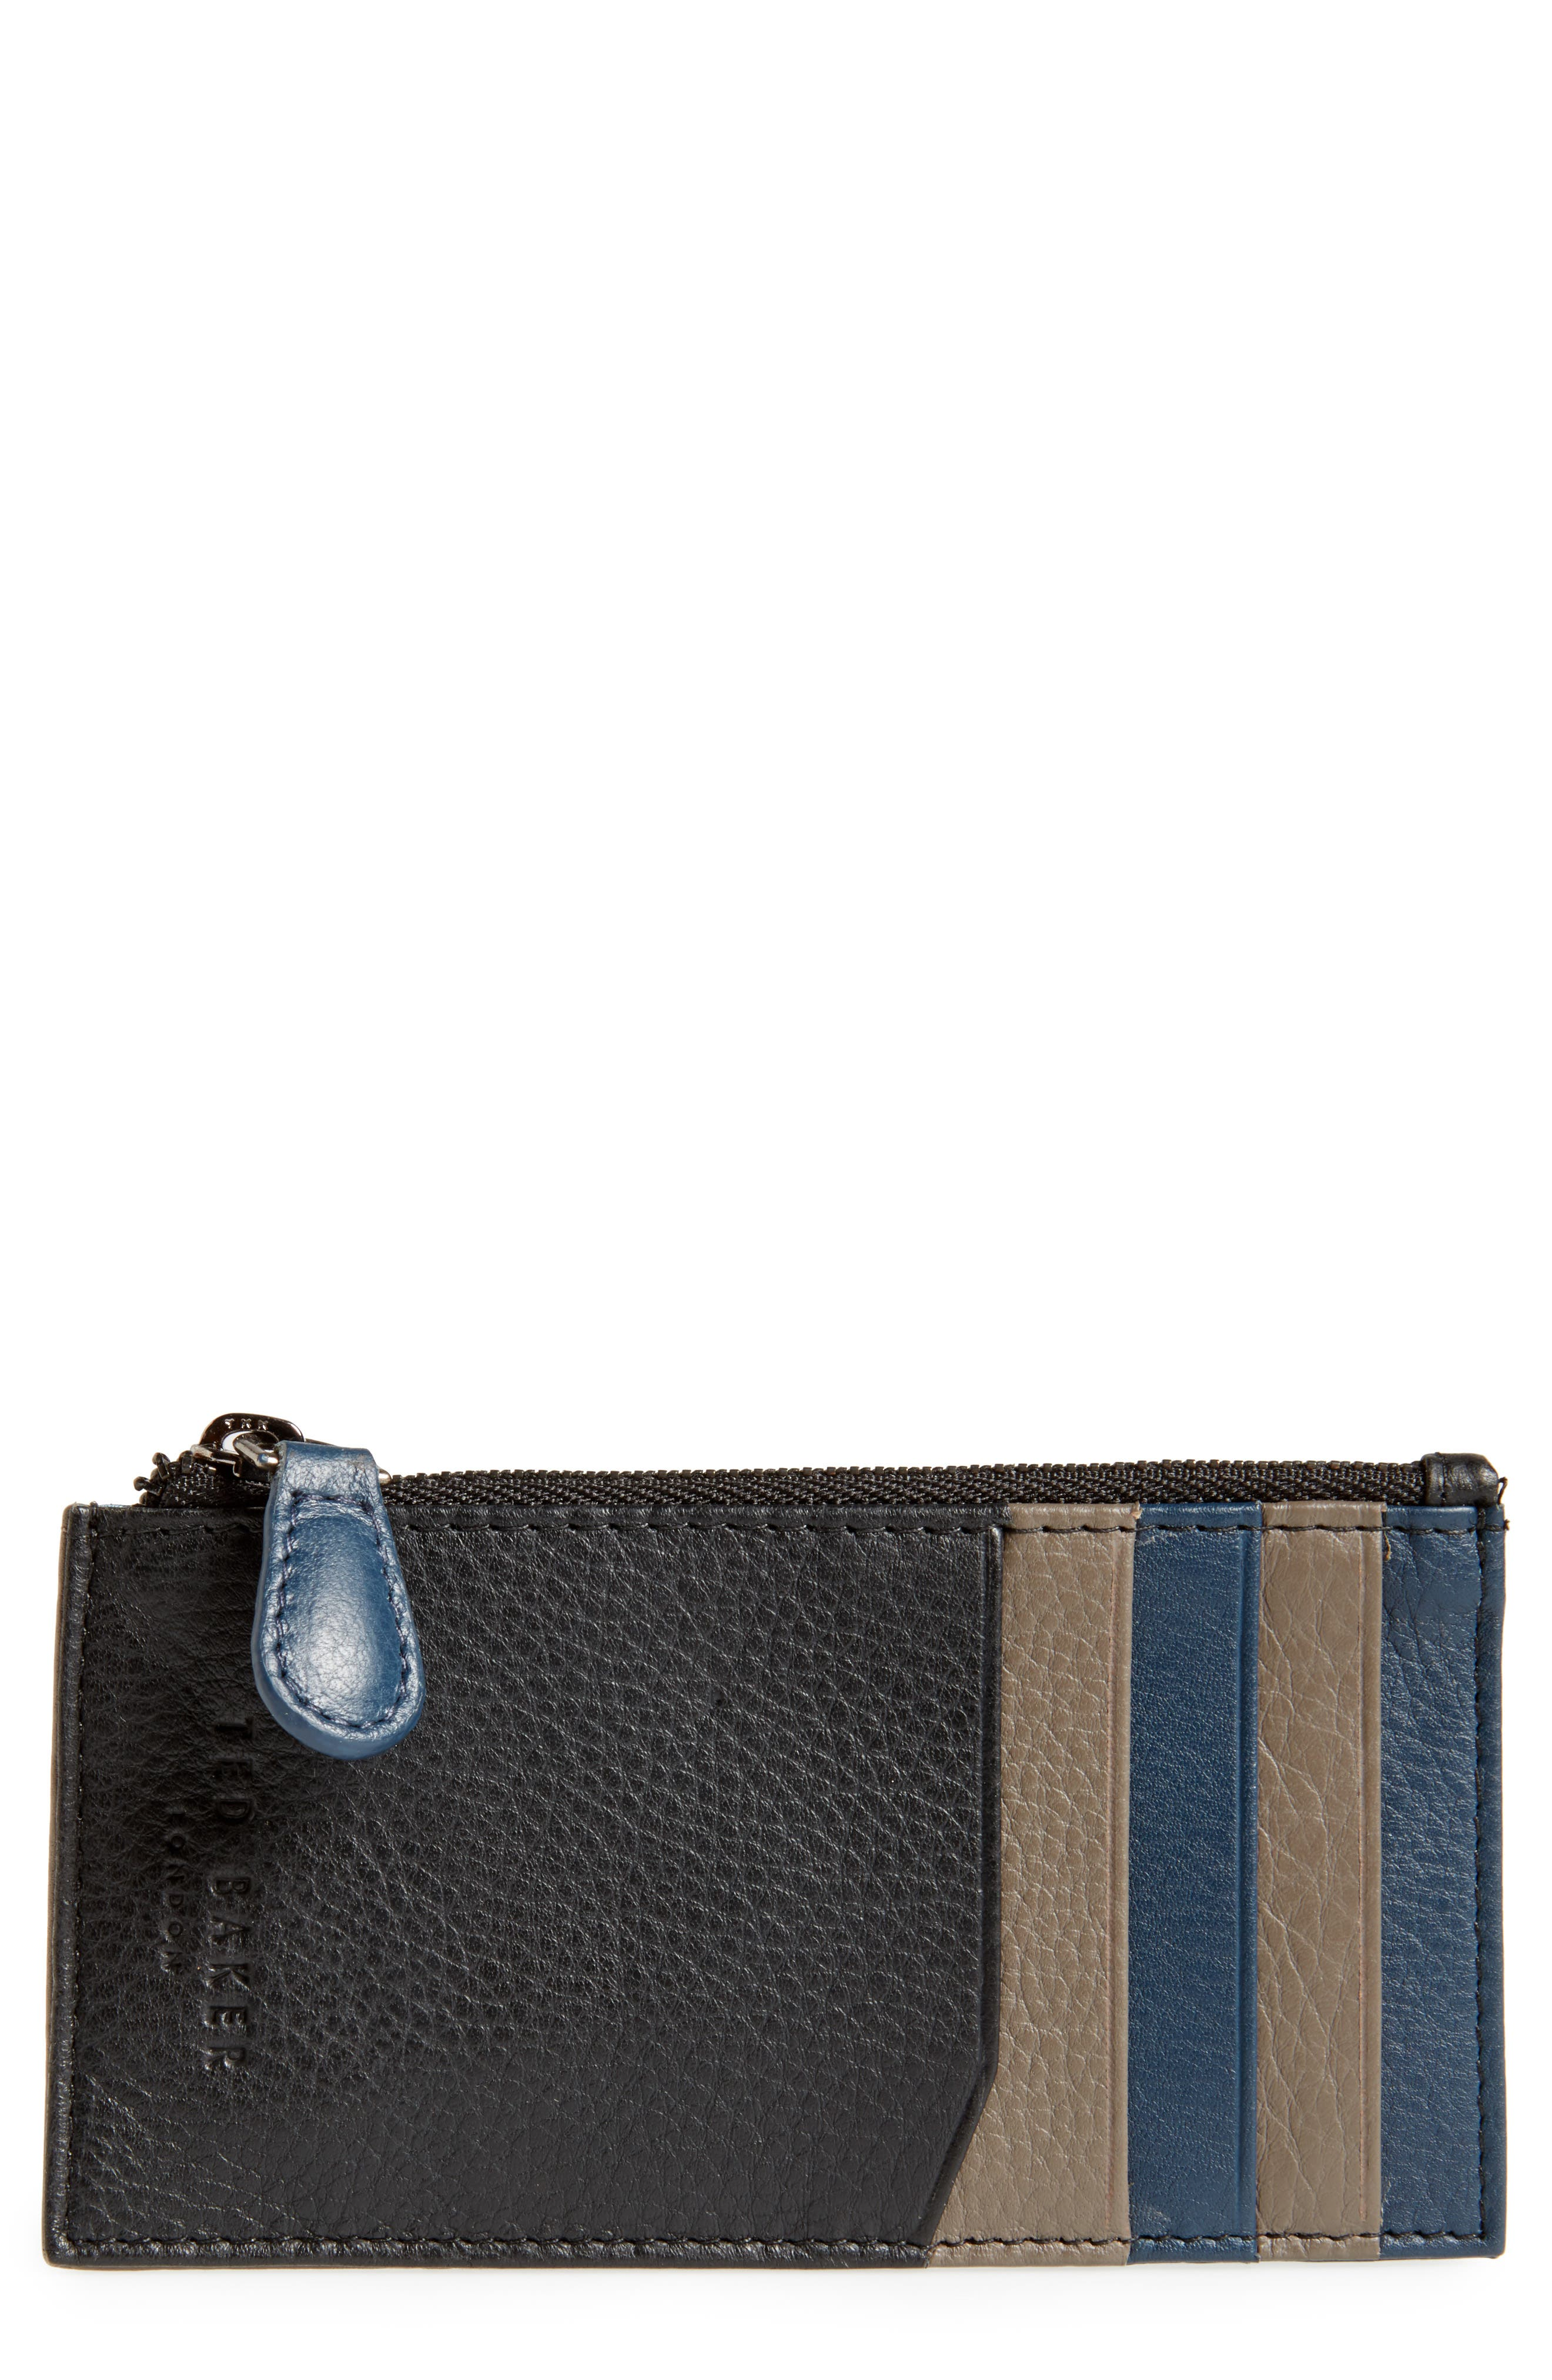 Jammee Leather Coin Pouch,                         Main,                         color, Black